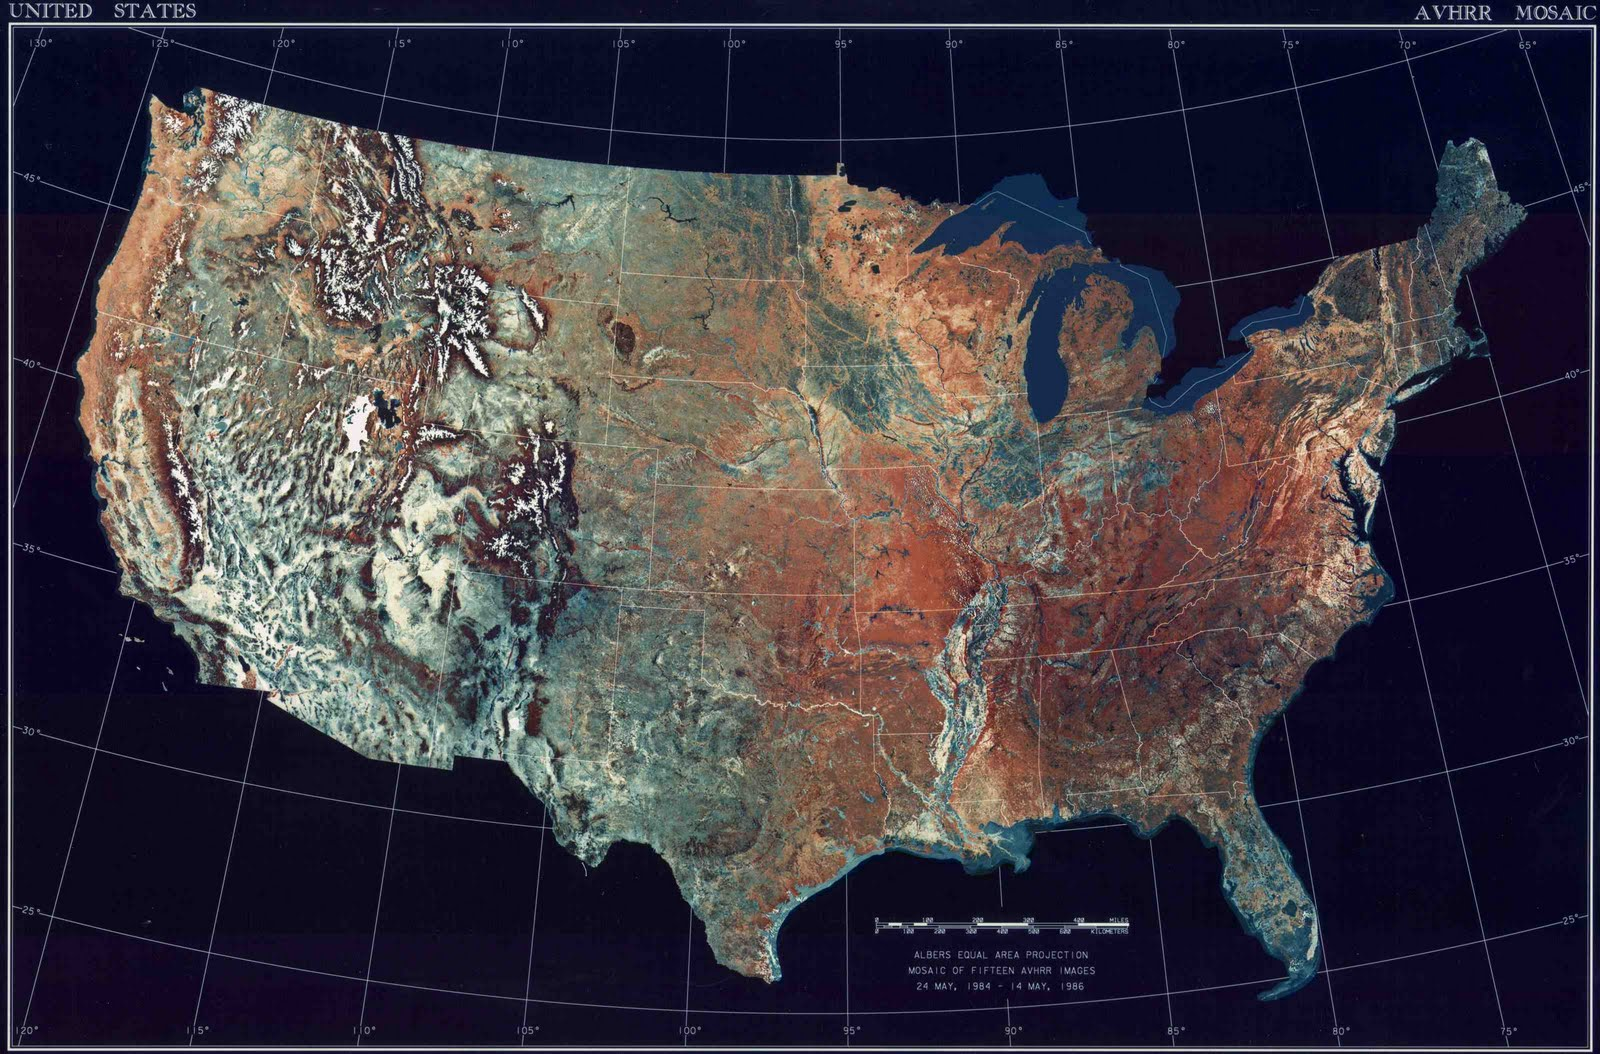 satellite image showing topography of the contiguous united states